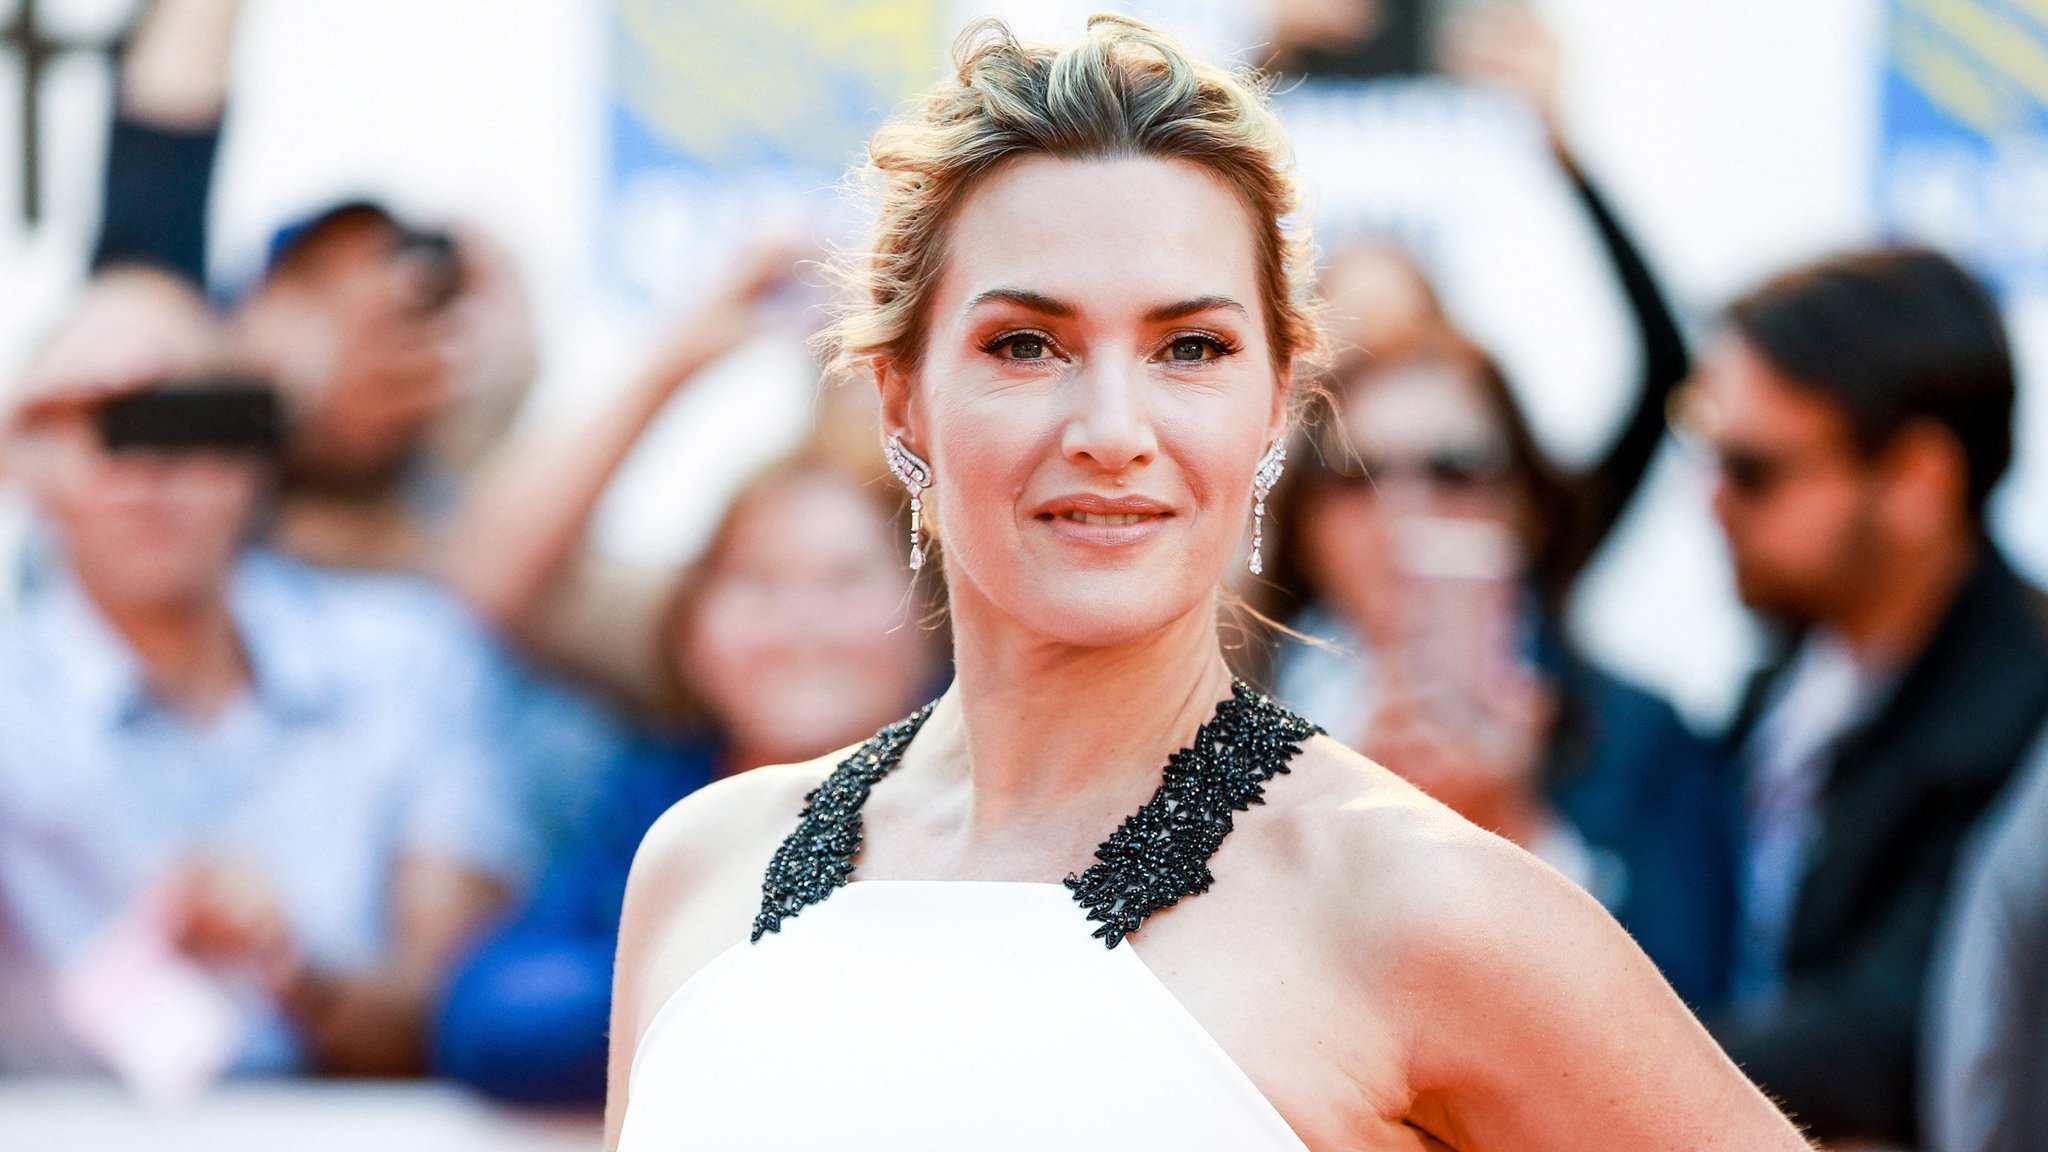 Kate Winslet says she deliberately didn't thank Harvey Weinstein in her Oscar speech: https://t.co/r7WICUr8Zy https://t.co/kB50kkUp4b